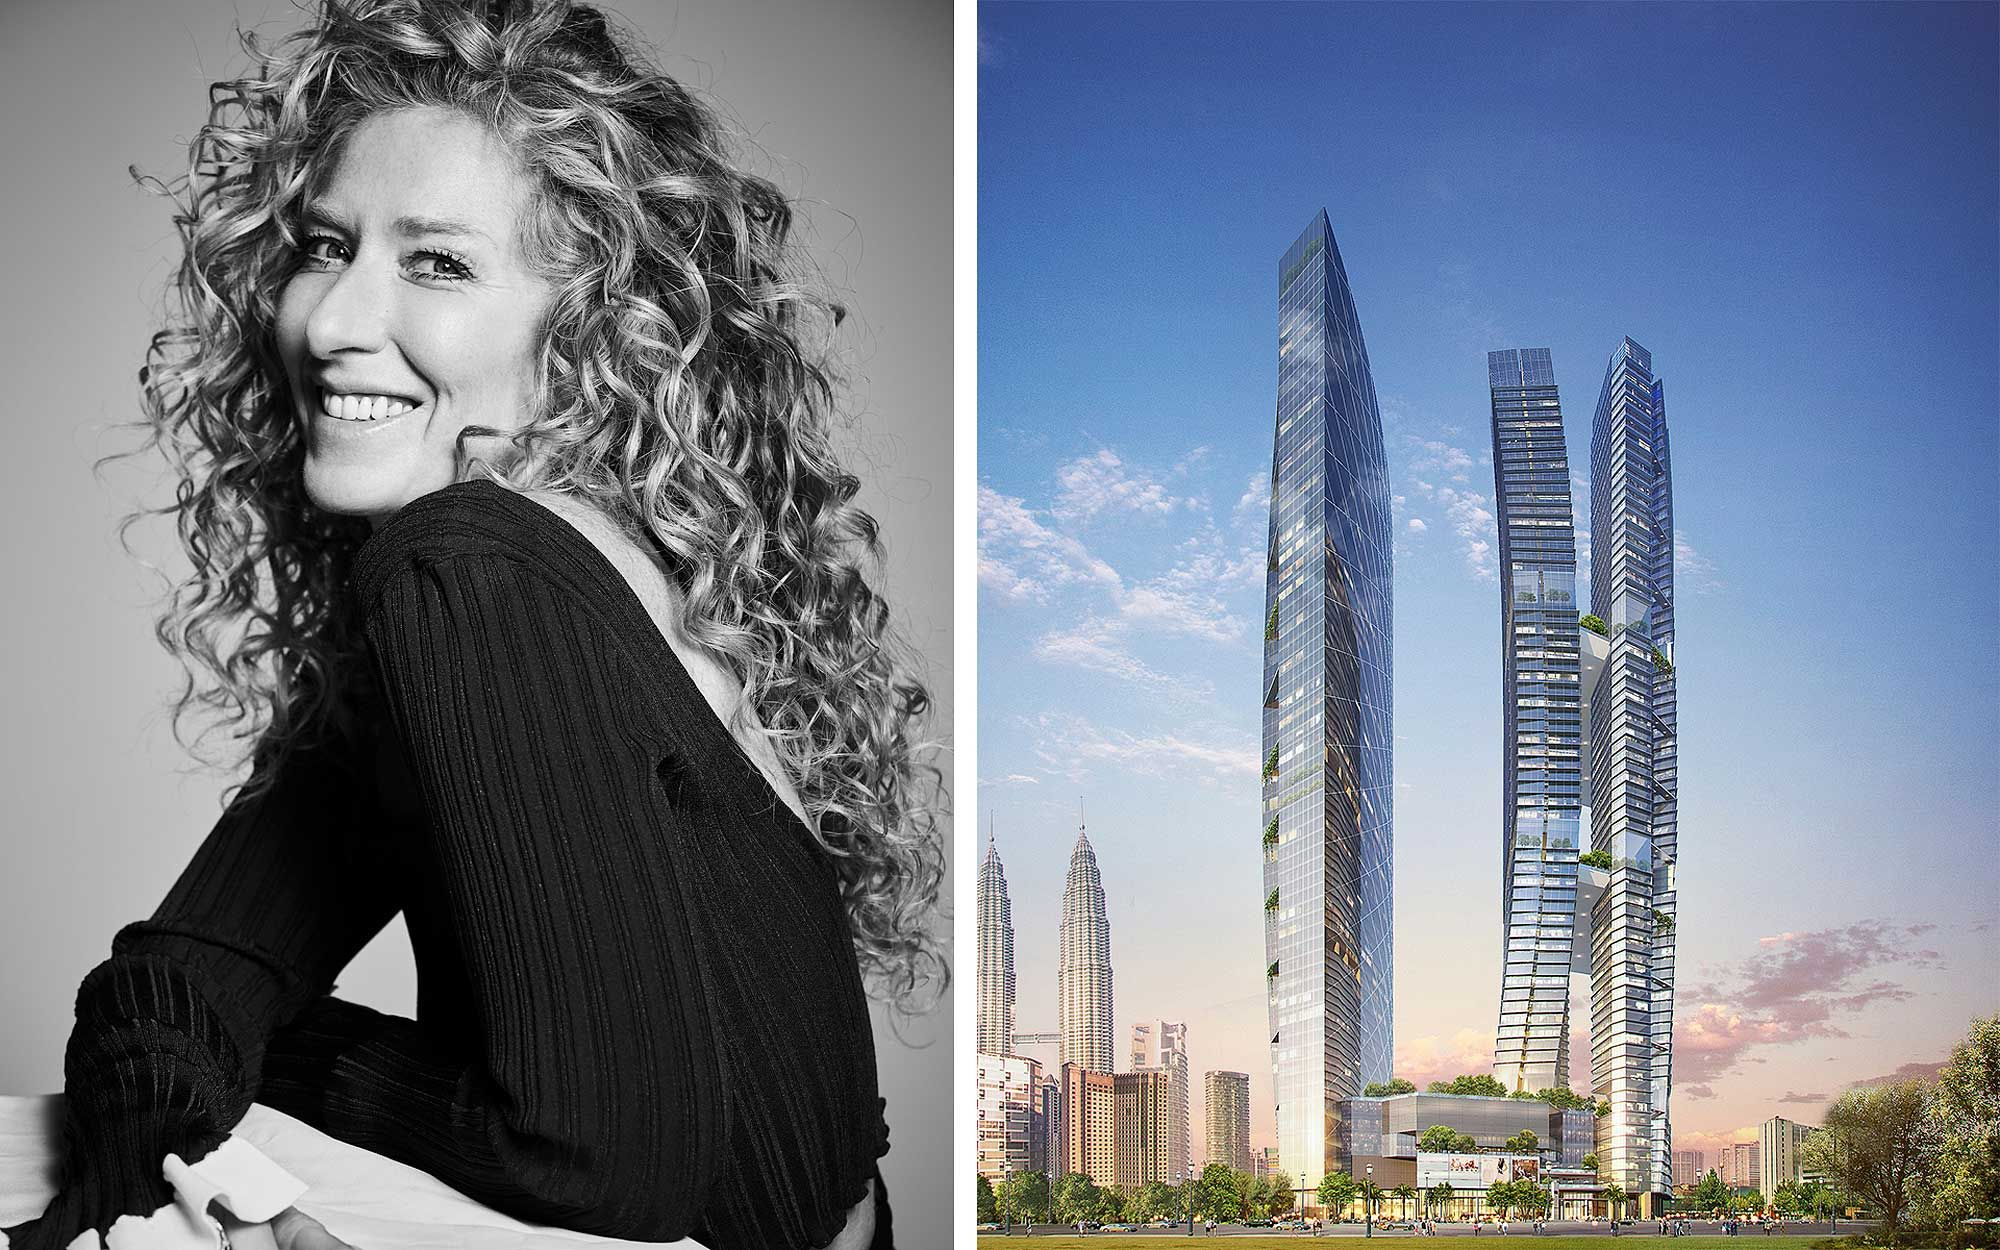 Superstar Designer Kelly Hoppen On Styling Her First Project In KL & How She Dreams Up Homes For Others